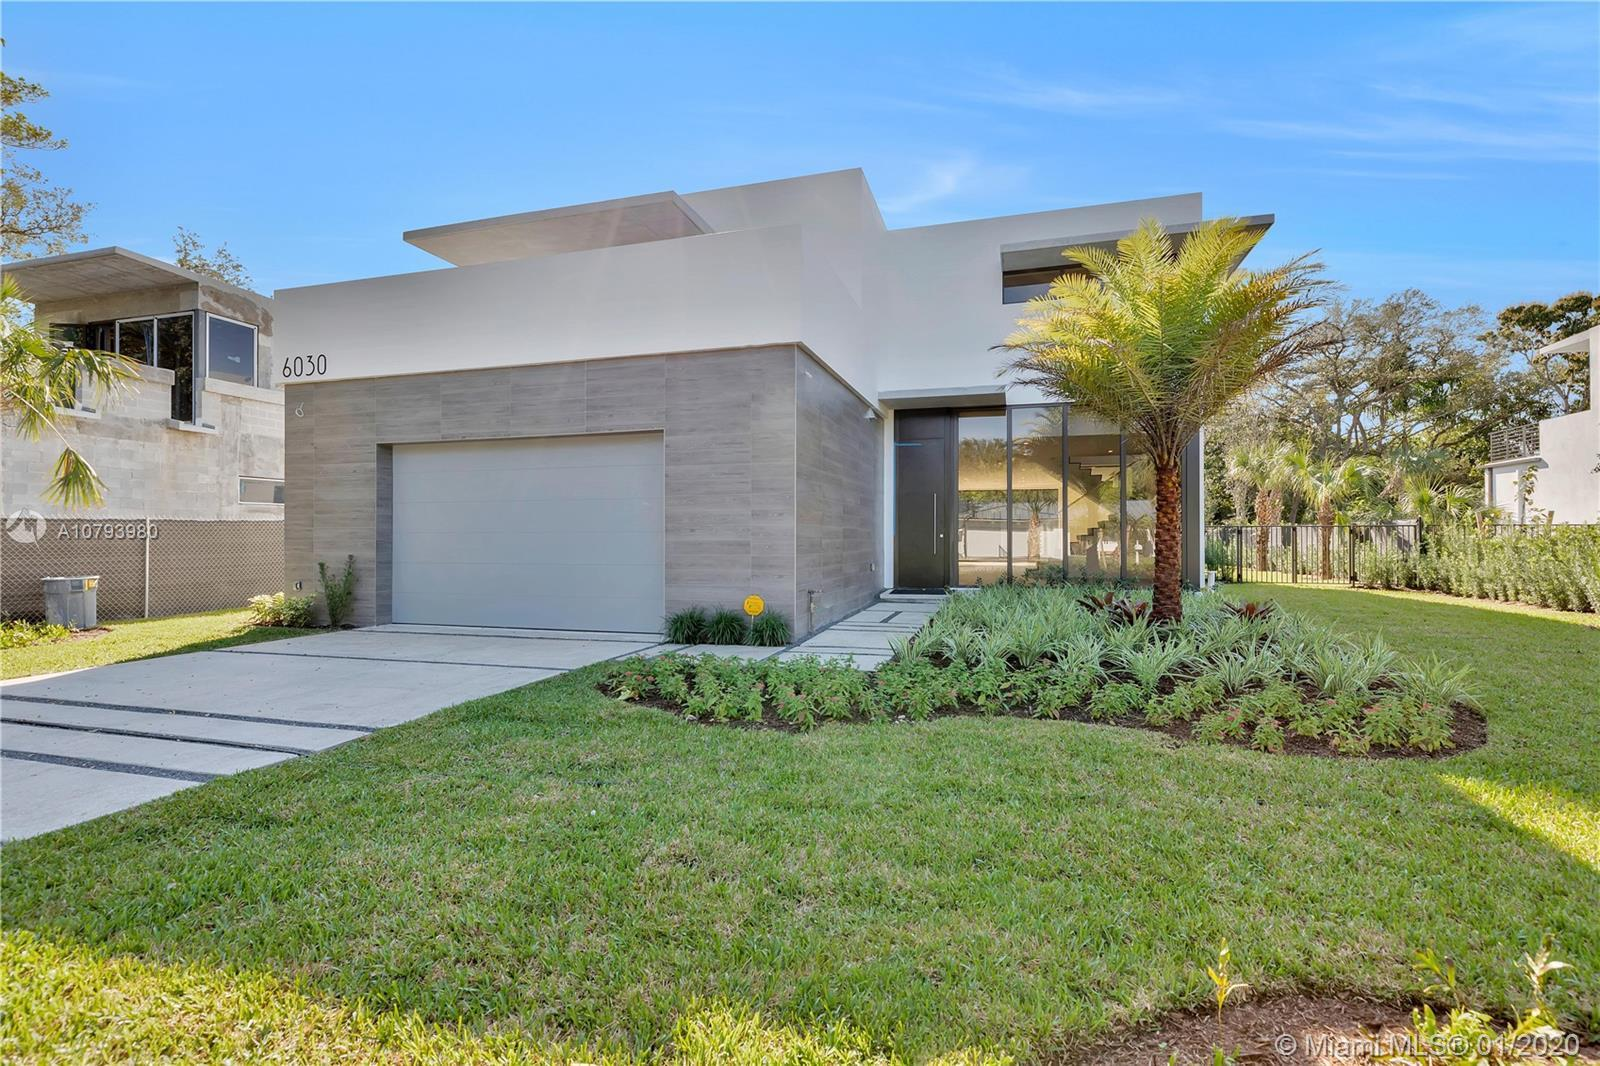 Brand new modern construction brought to you by the Calta Group on a quiet street. Just built and re